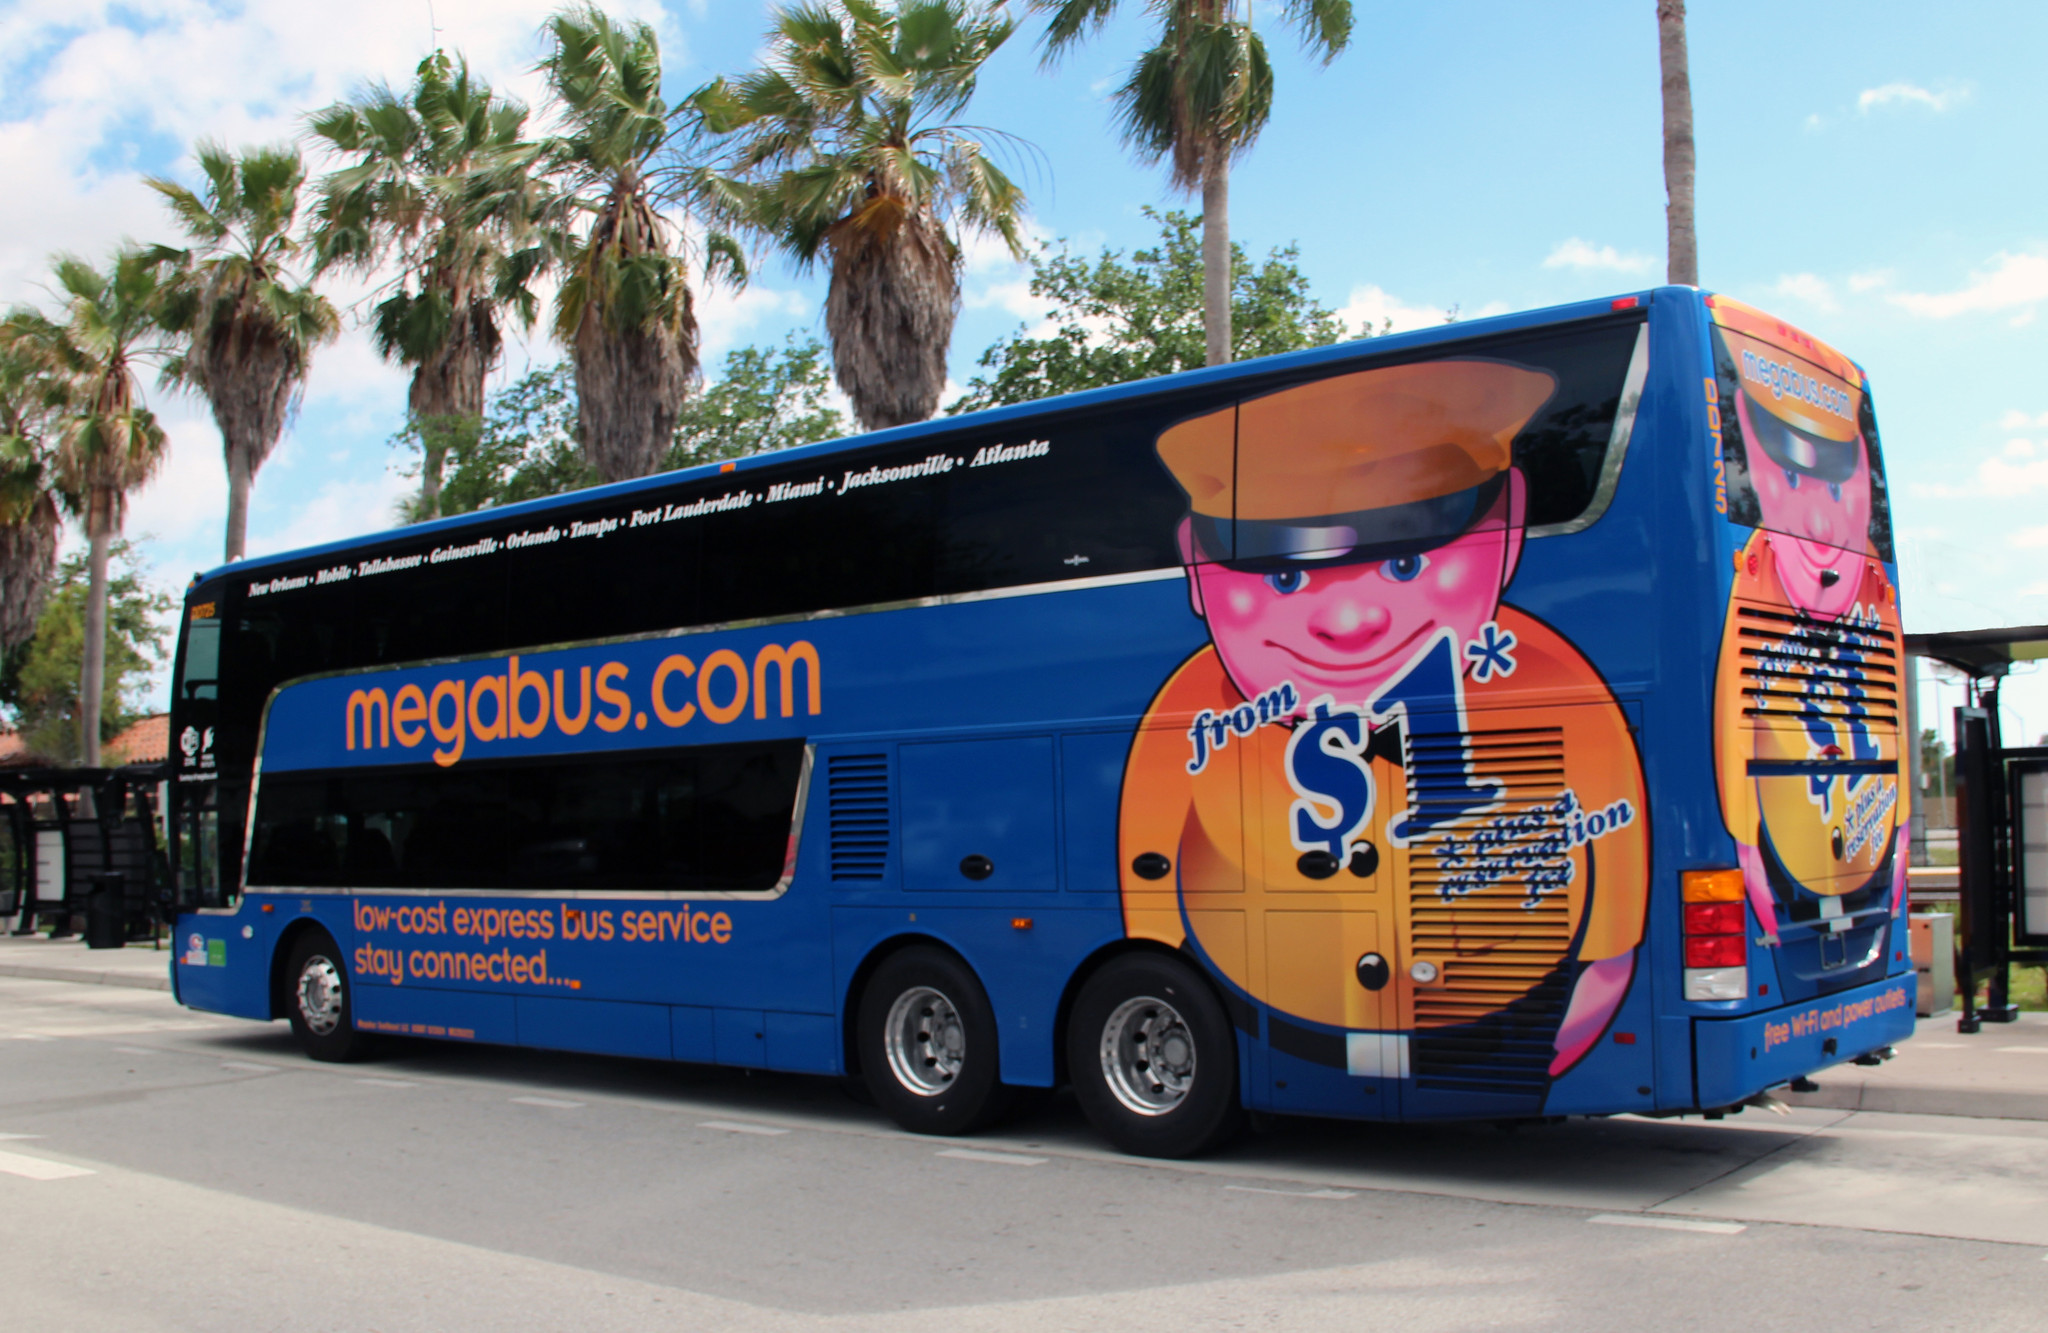 Megabus Com Launching Service From Greater Fort Lauderdale